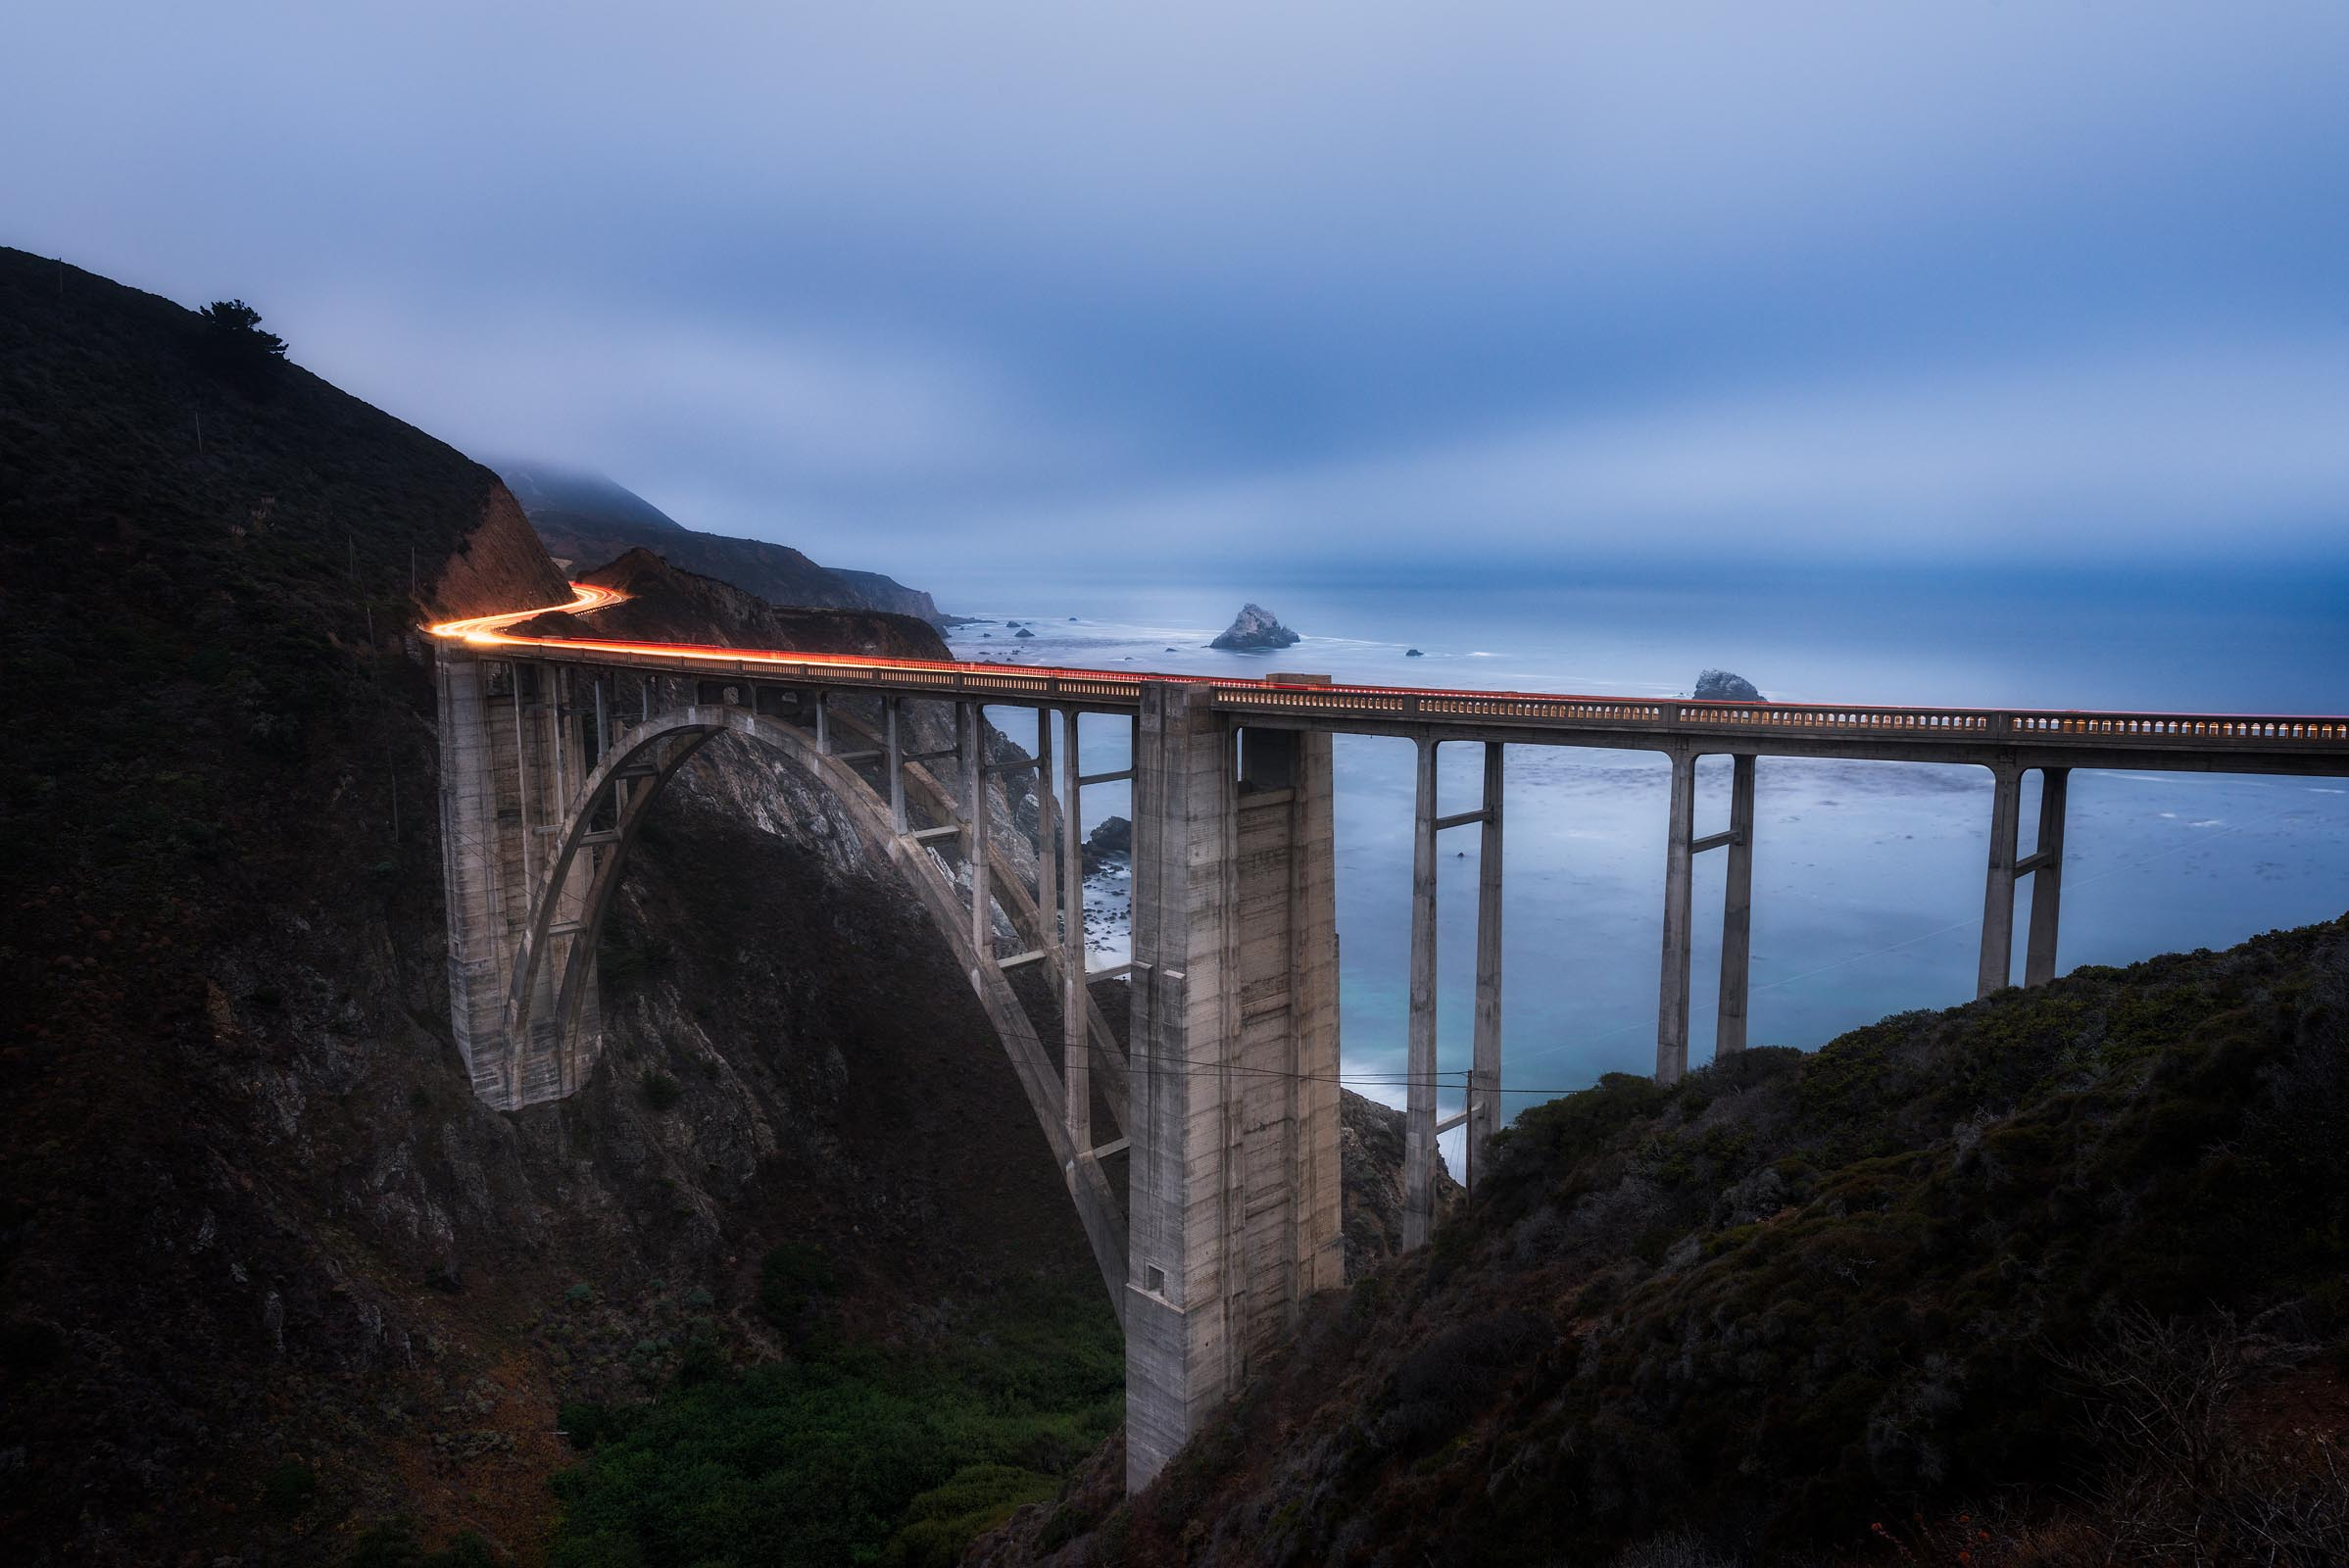 Photograph of Bixby Bridge in Big Sur, California by Brent Goldman Photography